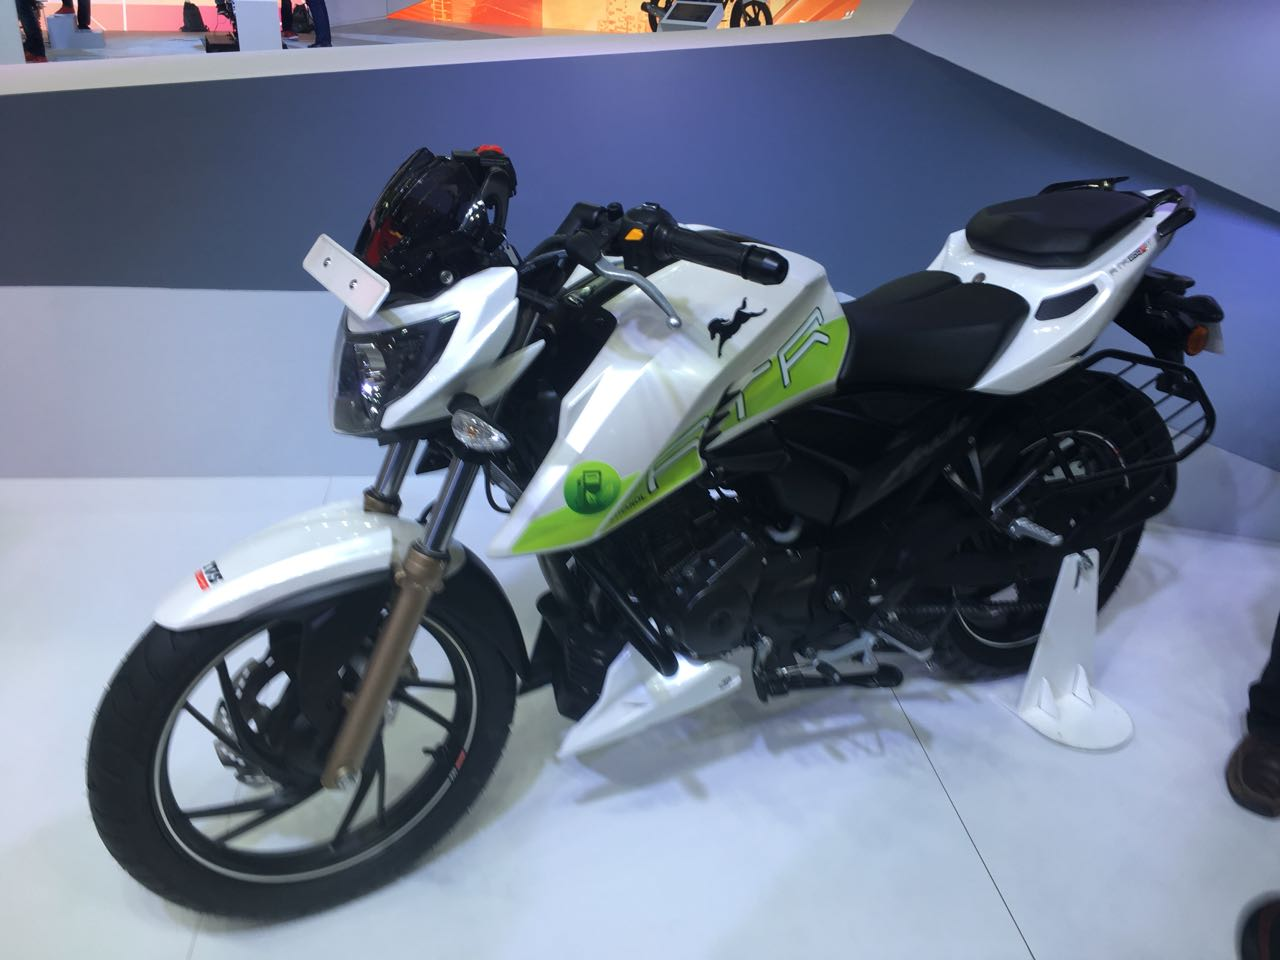 Auto Expo 2018: Hero MotoCorp Introduces India's First 200cc Adventure Bike XPulse